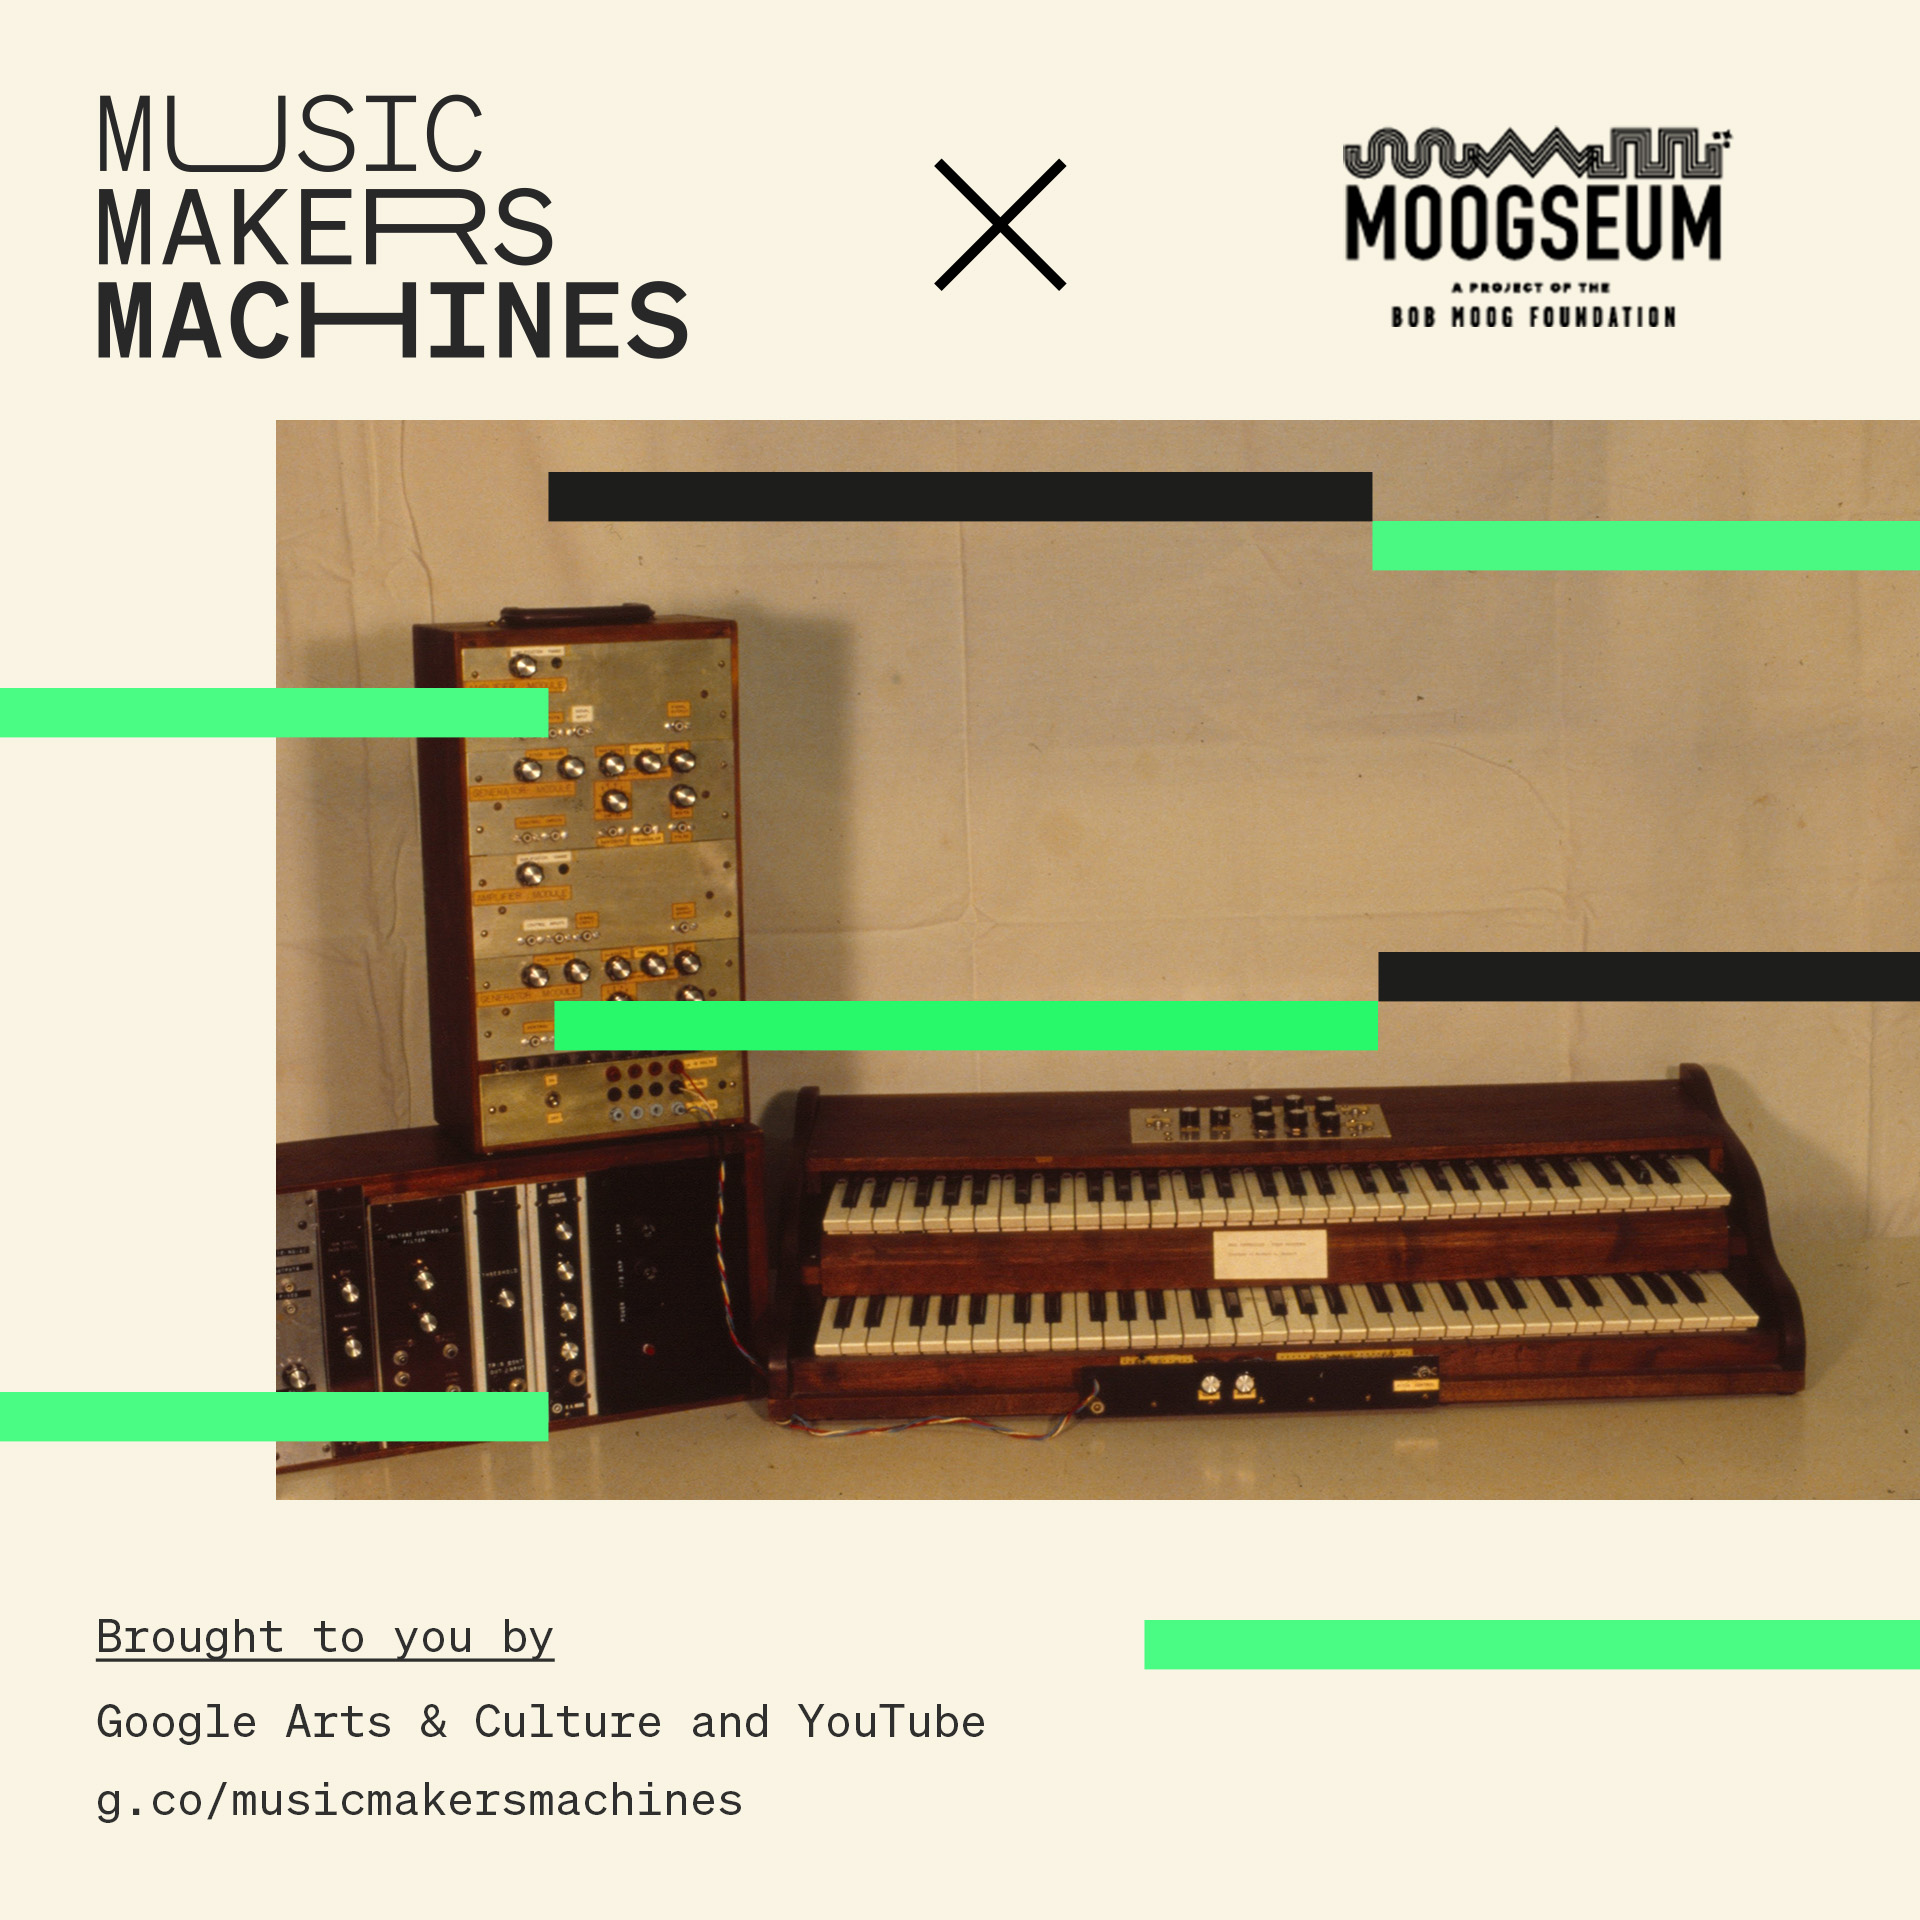 Moogseum Announces Exhibits as Part of Google Arts and Culture Exhibition